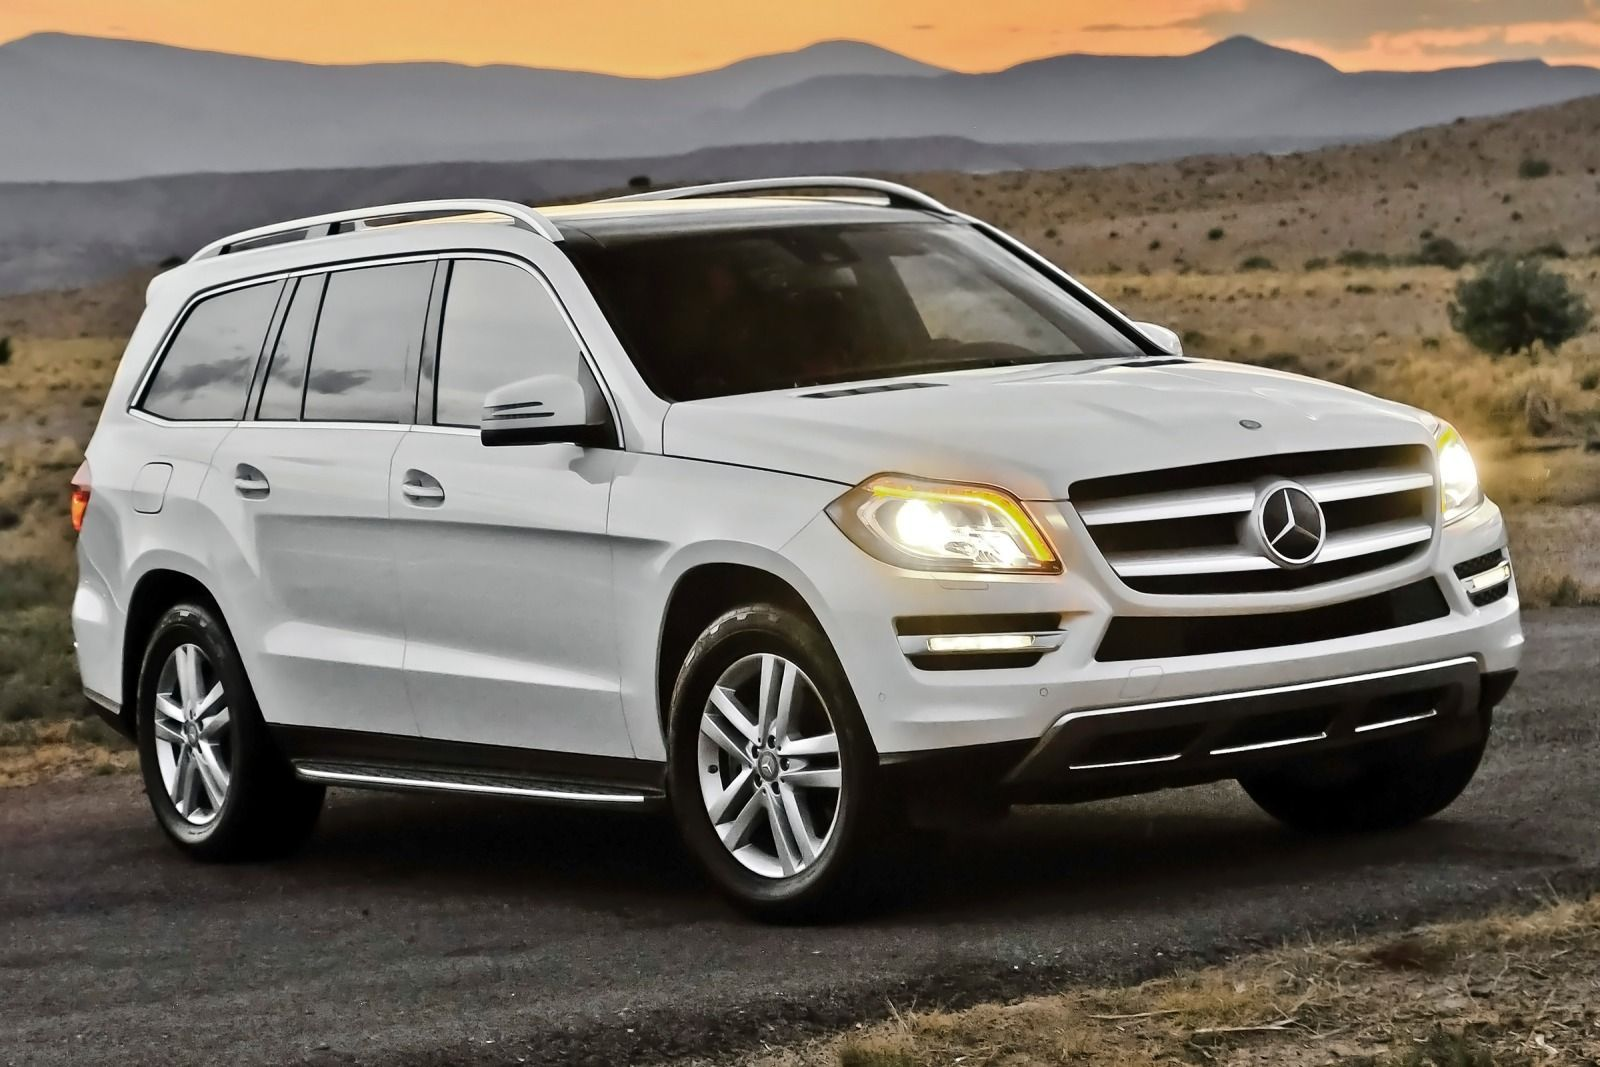 Image gallery mercedes suv for Mercedes benz g class suv price